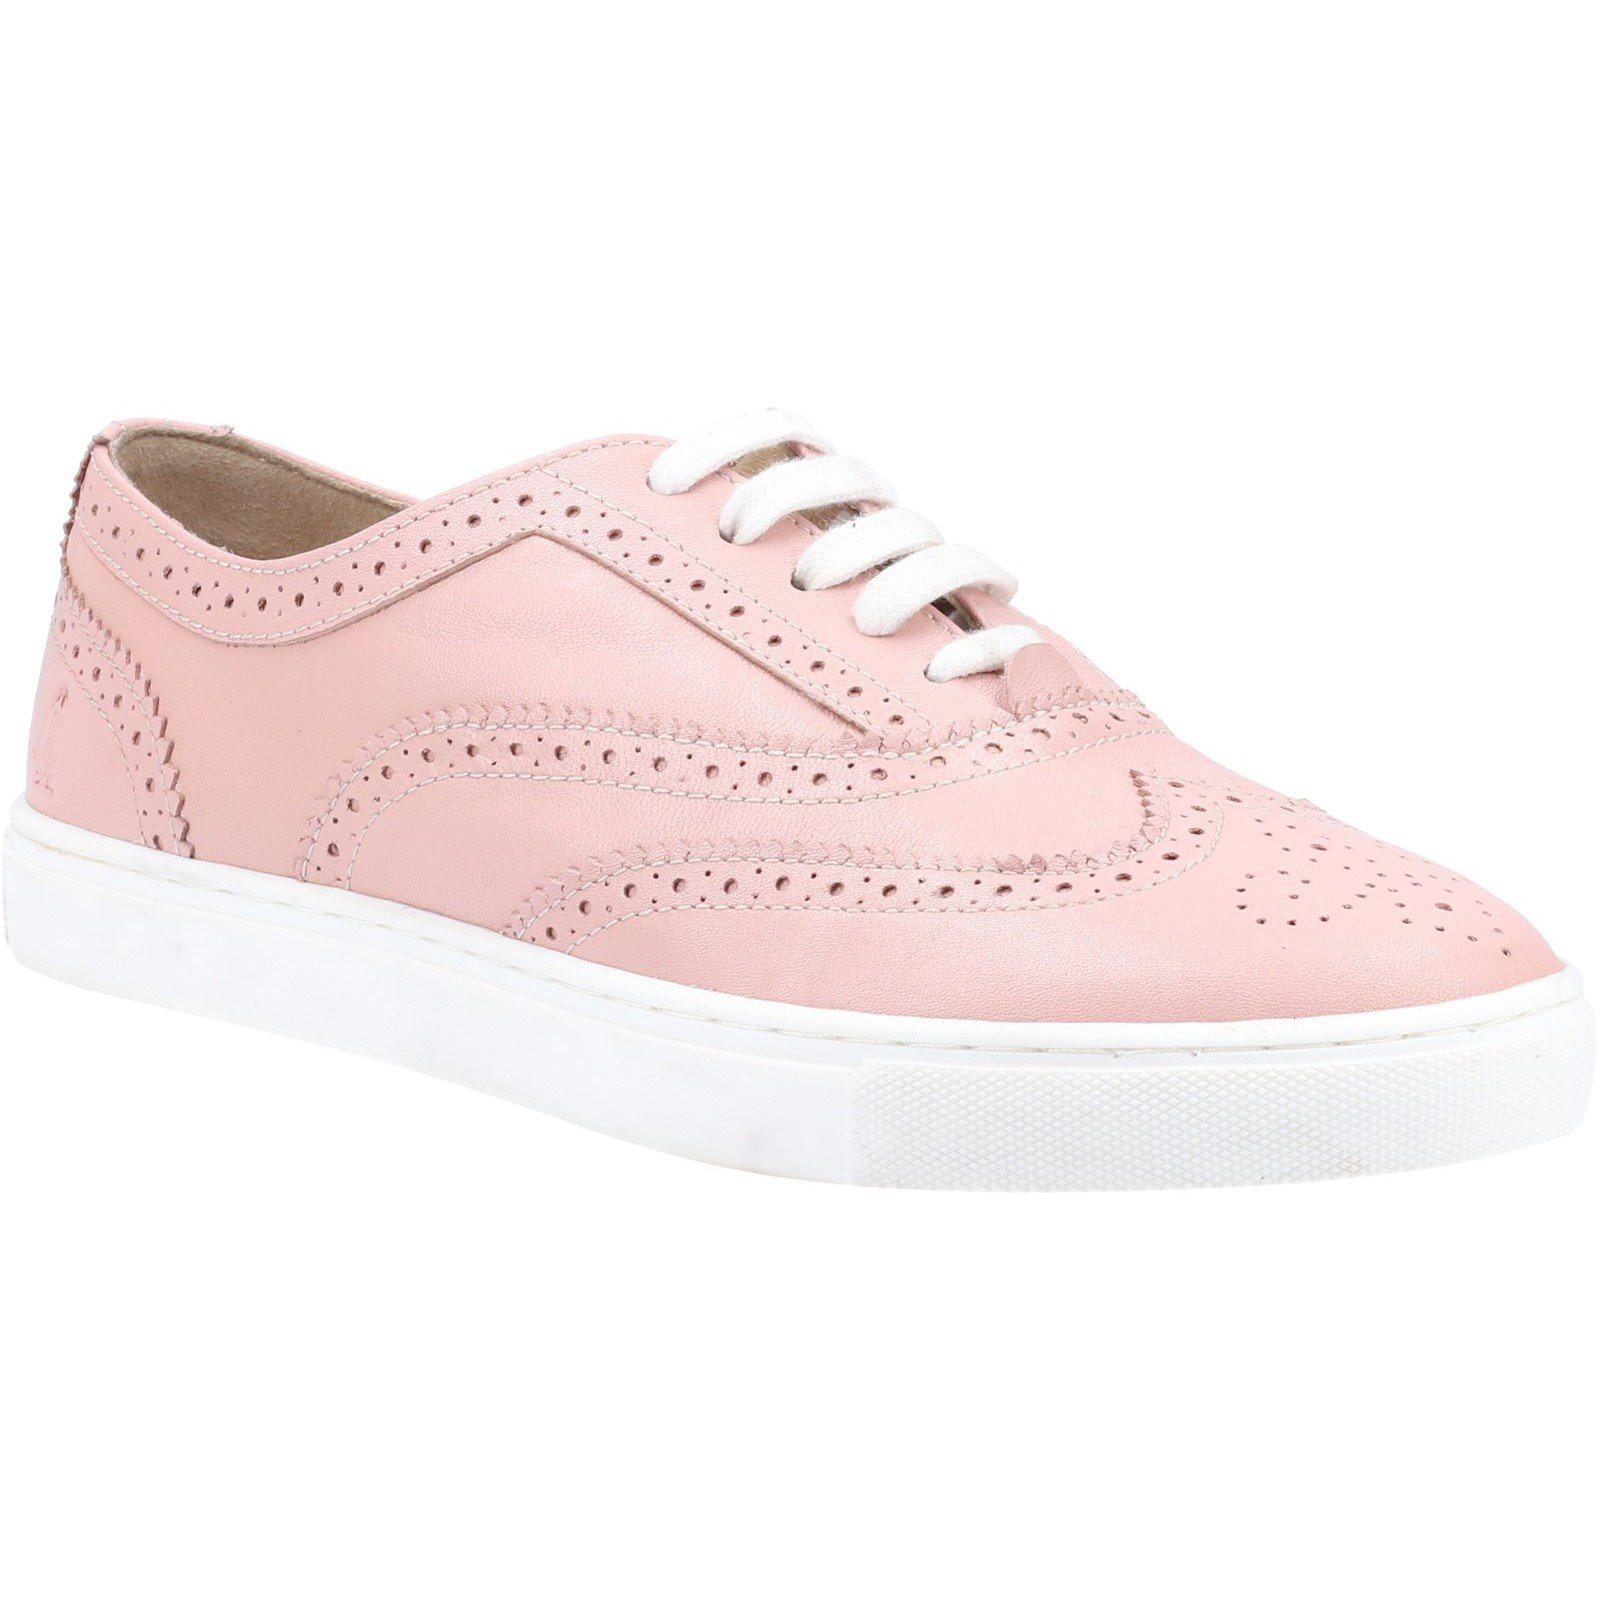 Hush Puppies Women's Tammy Trainer Various Colours 32847 - Blush 4